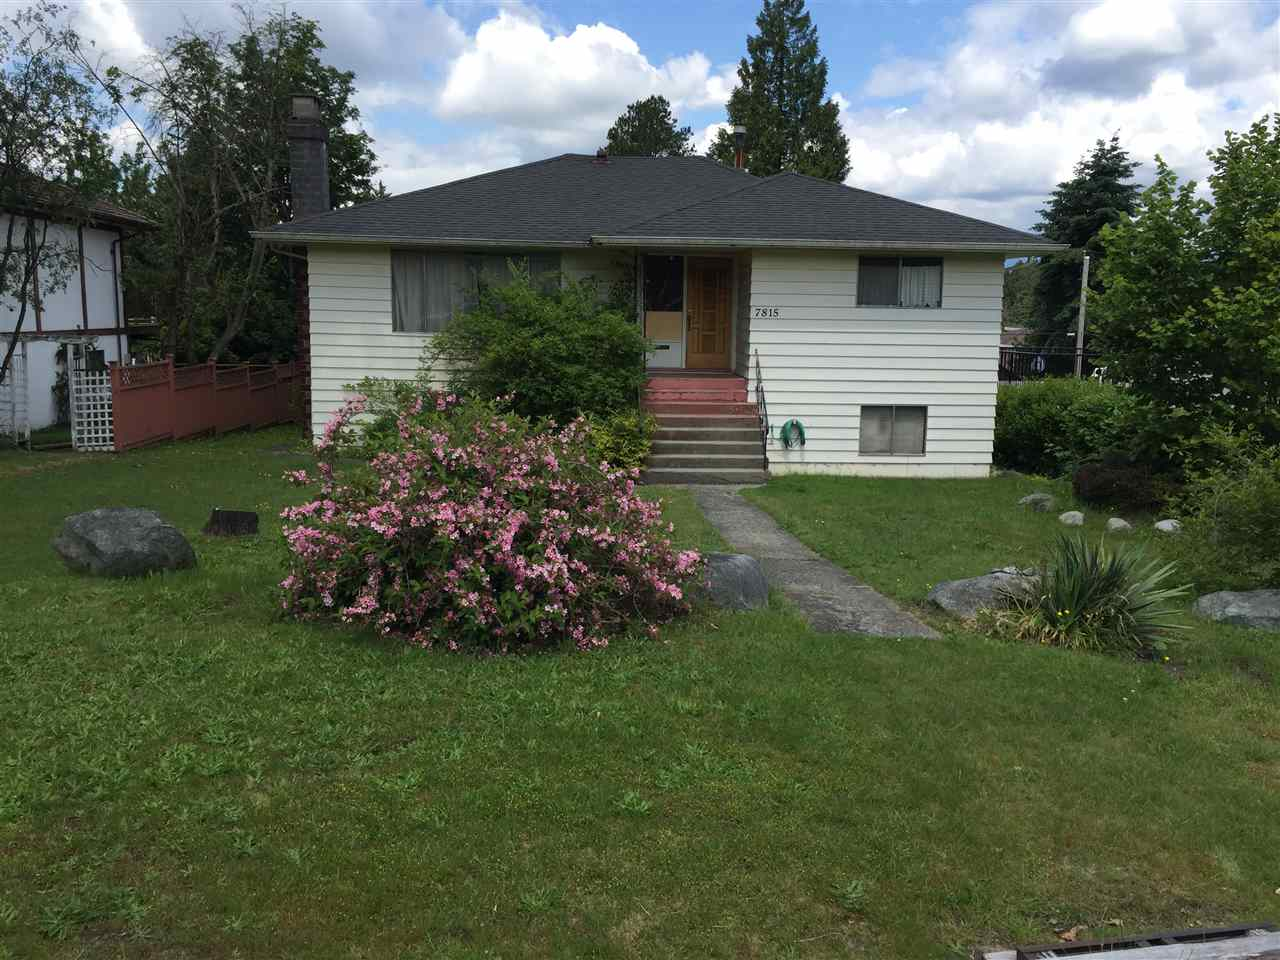 Removed: 7815 Allman Street, Burnaby, BC - Removed on 2020-06-16 00:15:25